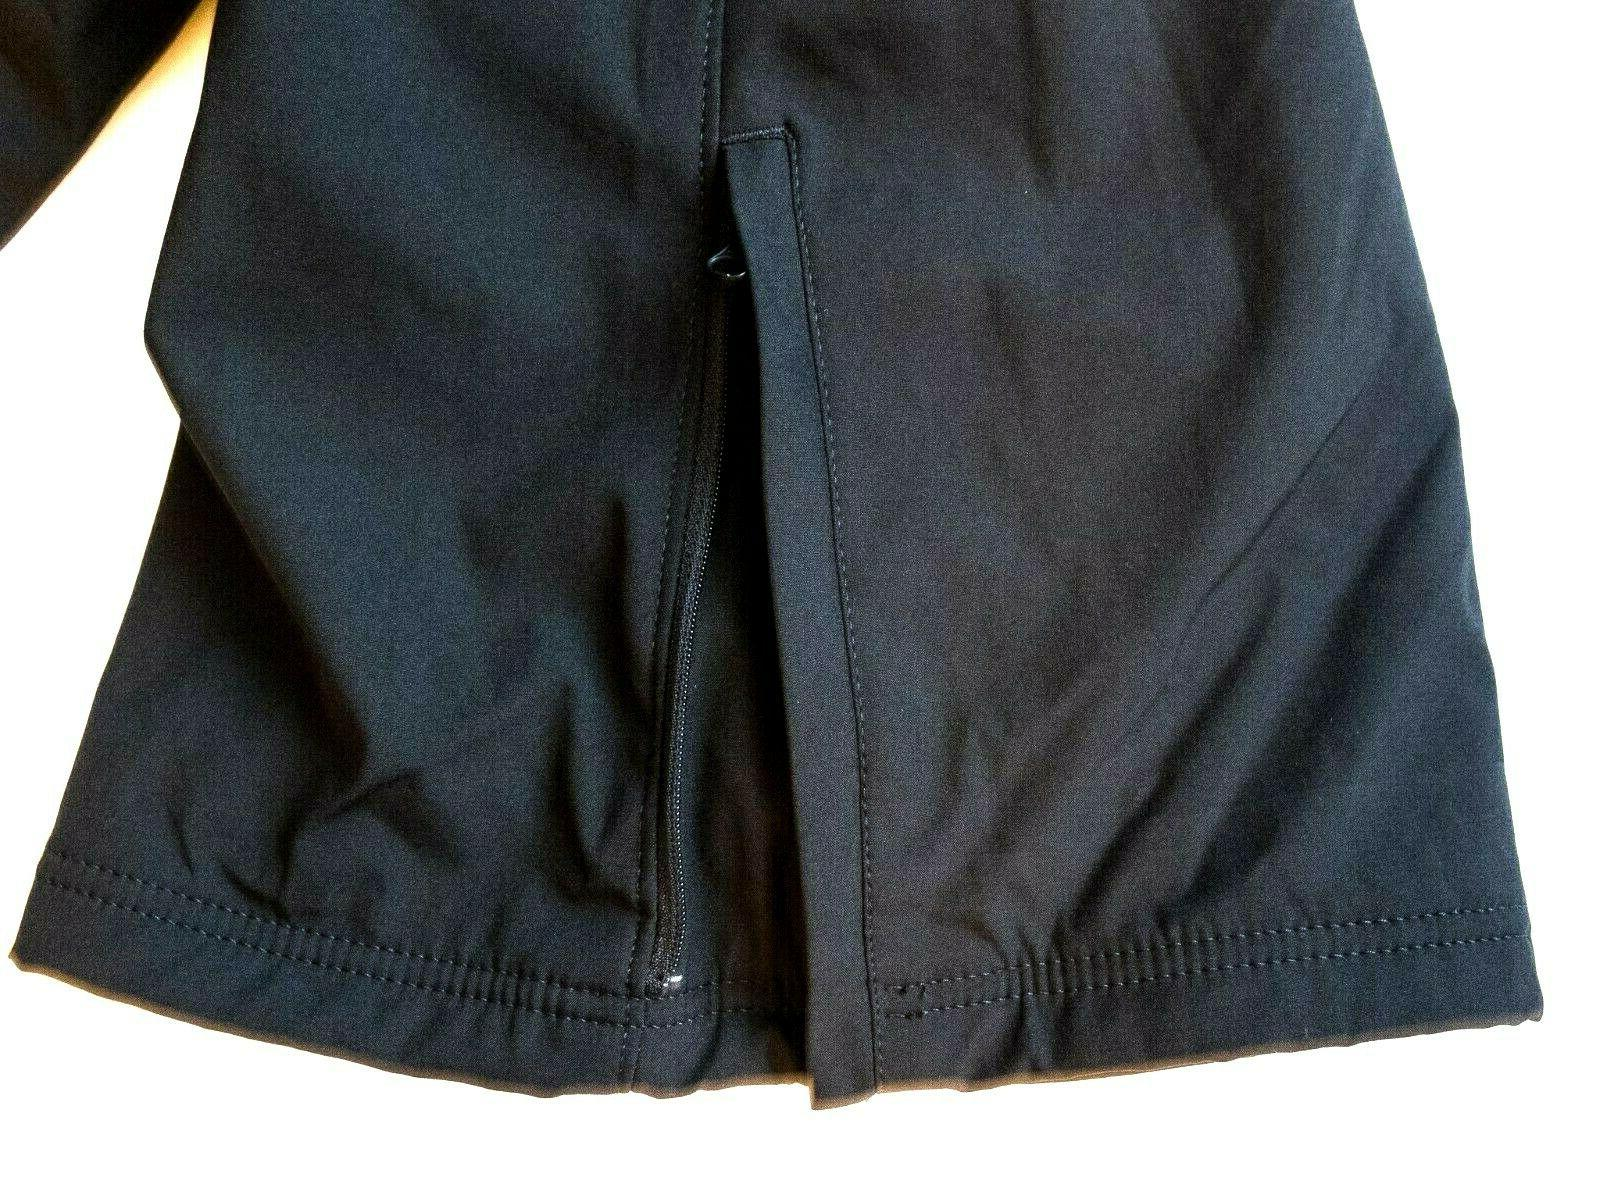 Gerry Insulated Snow Ski Pants Black